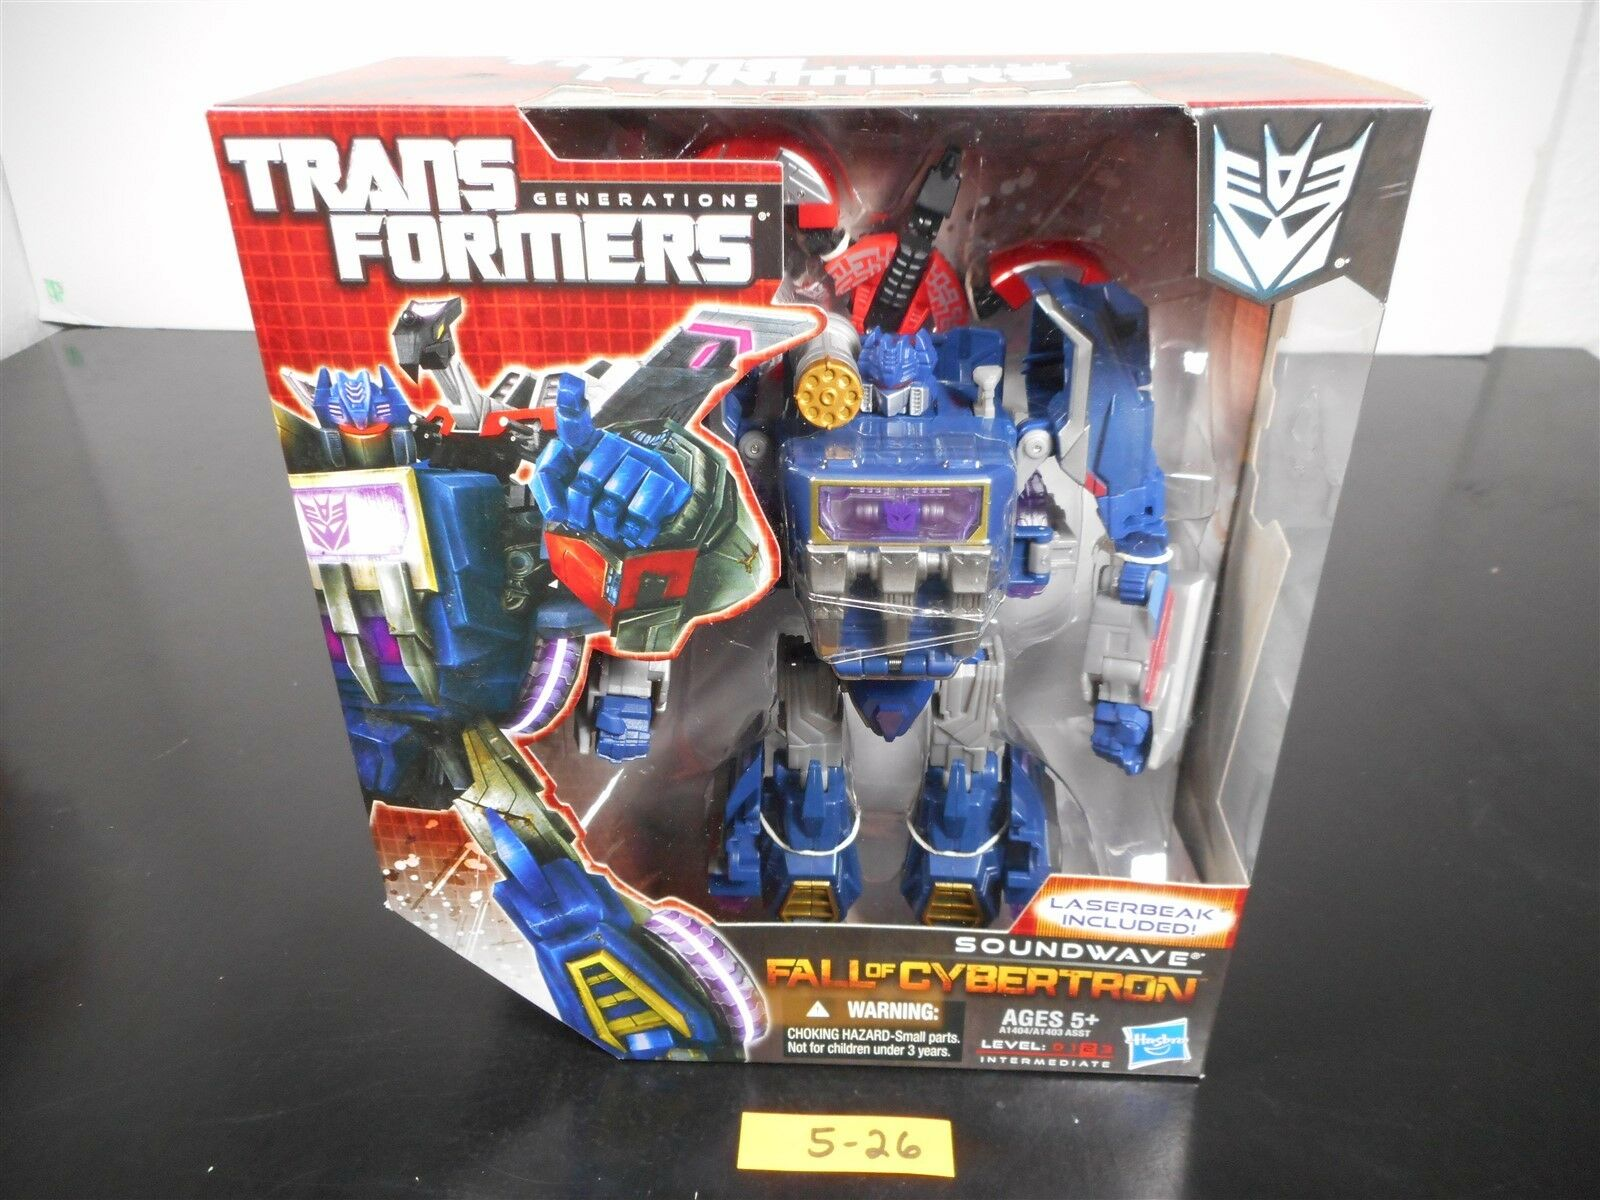 nuovo SEALED  TRANSFORMERS GENERATIONS Ftutti OF CYBERTRON FOC suonoWAVE cifra 526